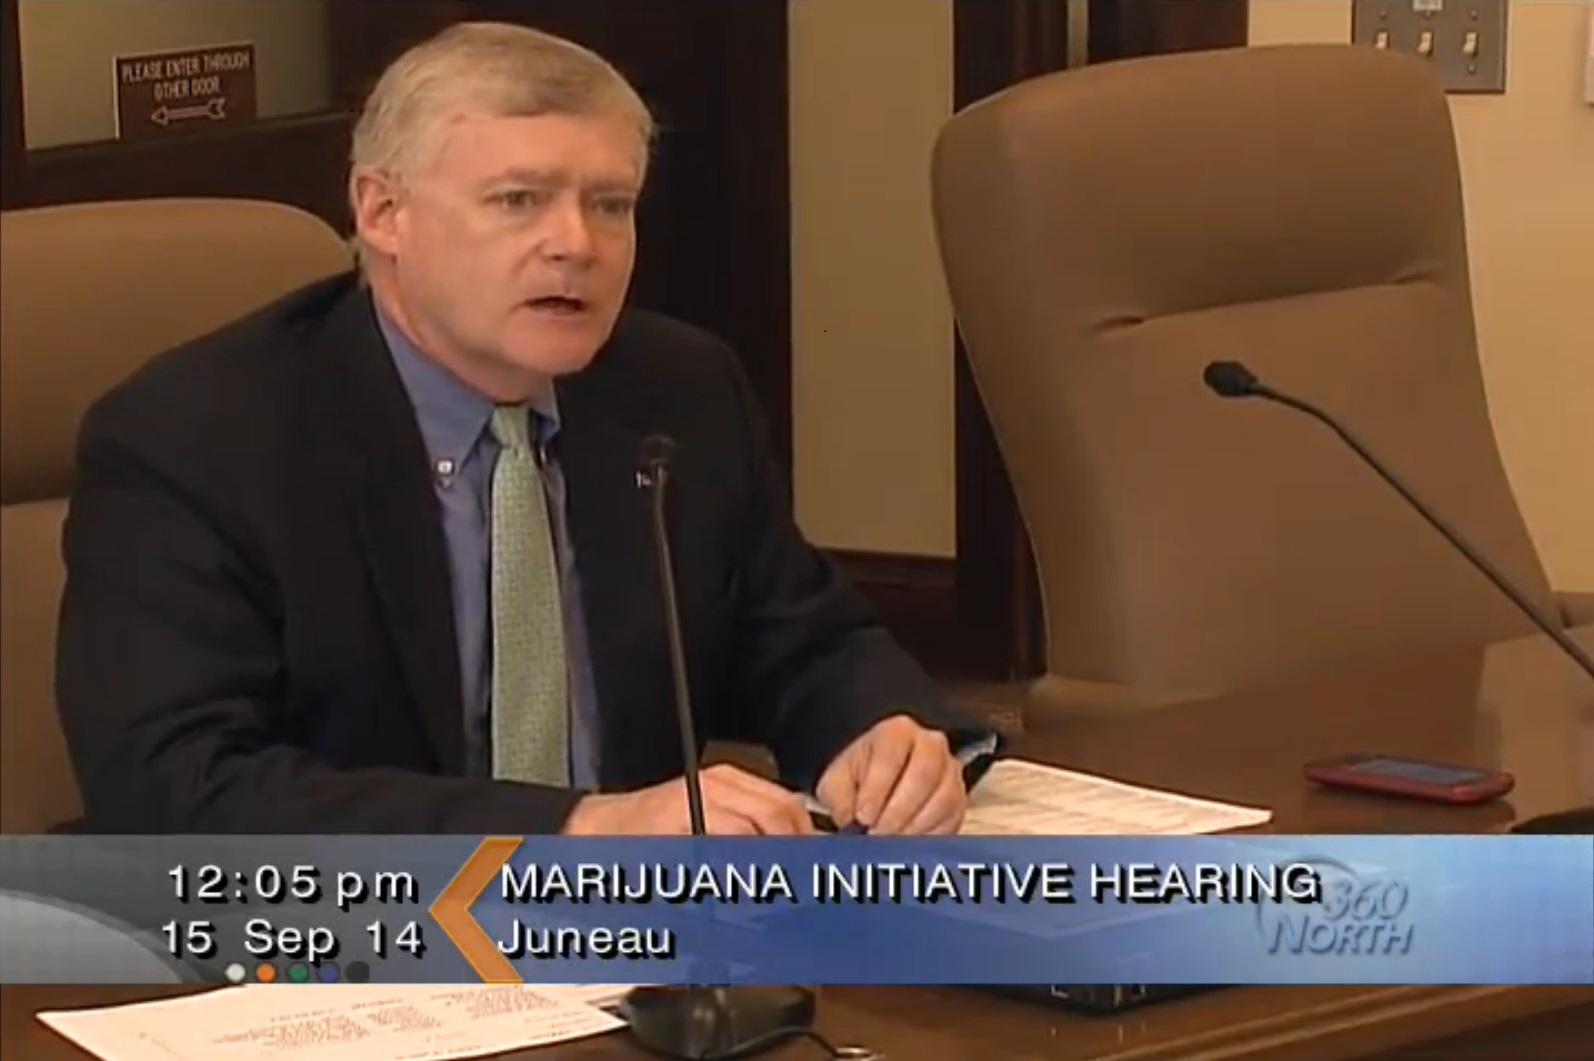 Lt. Gov. Mead Treadwell at a marijuana legalization initiative hearing on Sept. 15, 2014. (Video capture via Gavel Alaska)